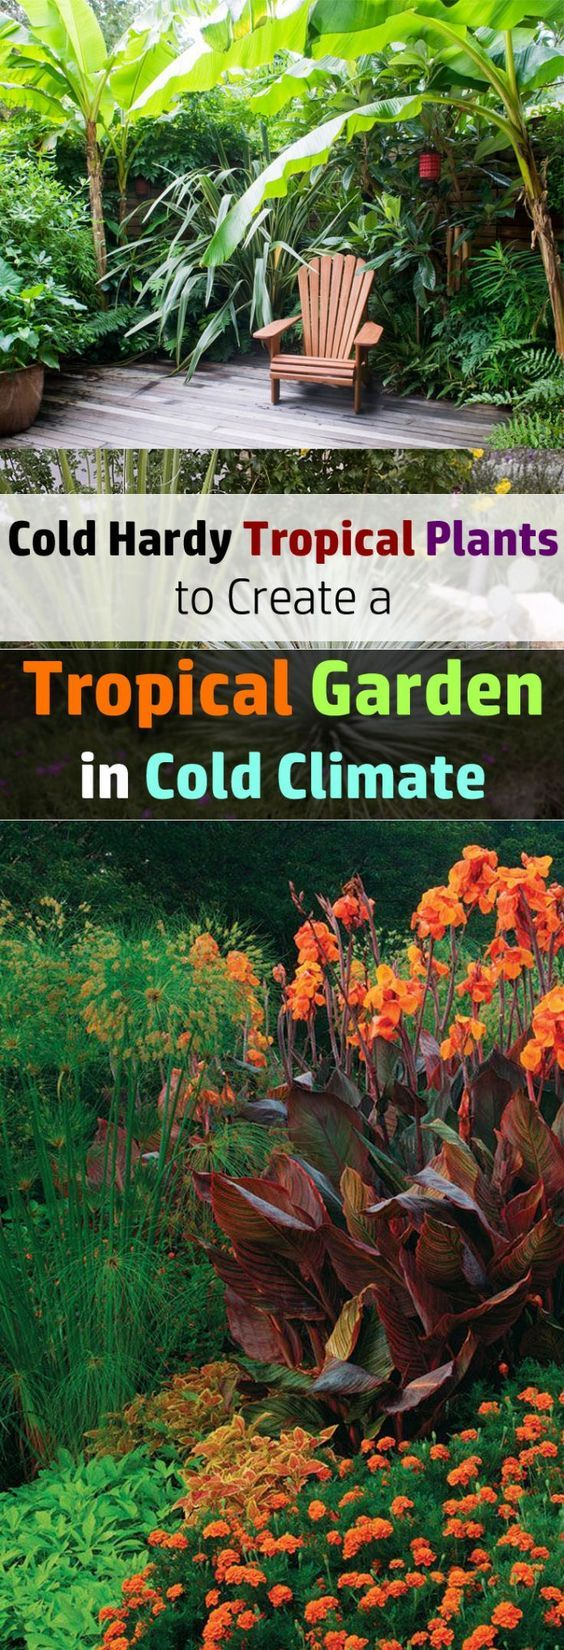 Small tropical backyard landscaping ideas - 14 Tropical Plants To Create A Tropical Garden In Cold Climate